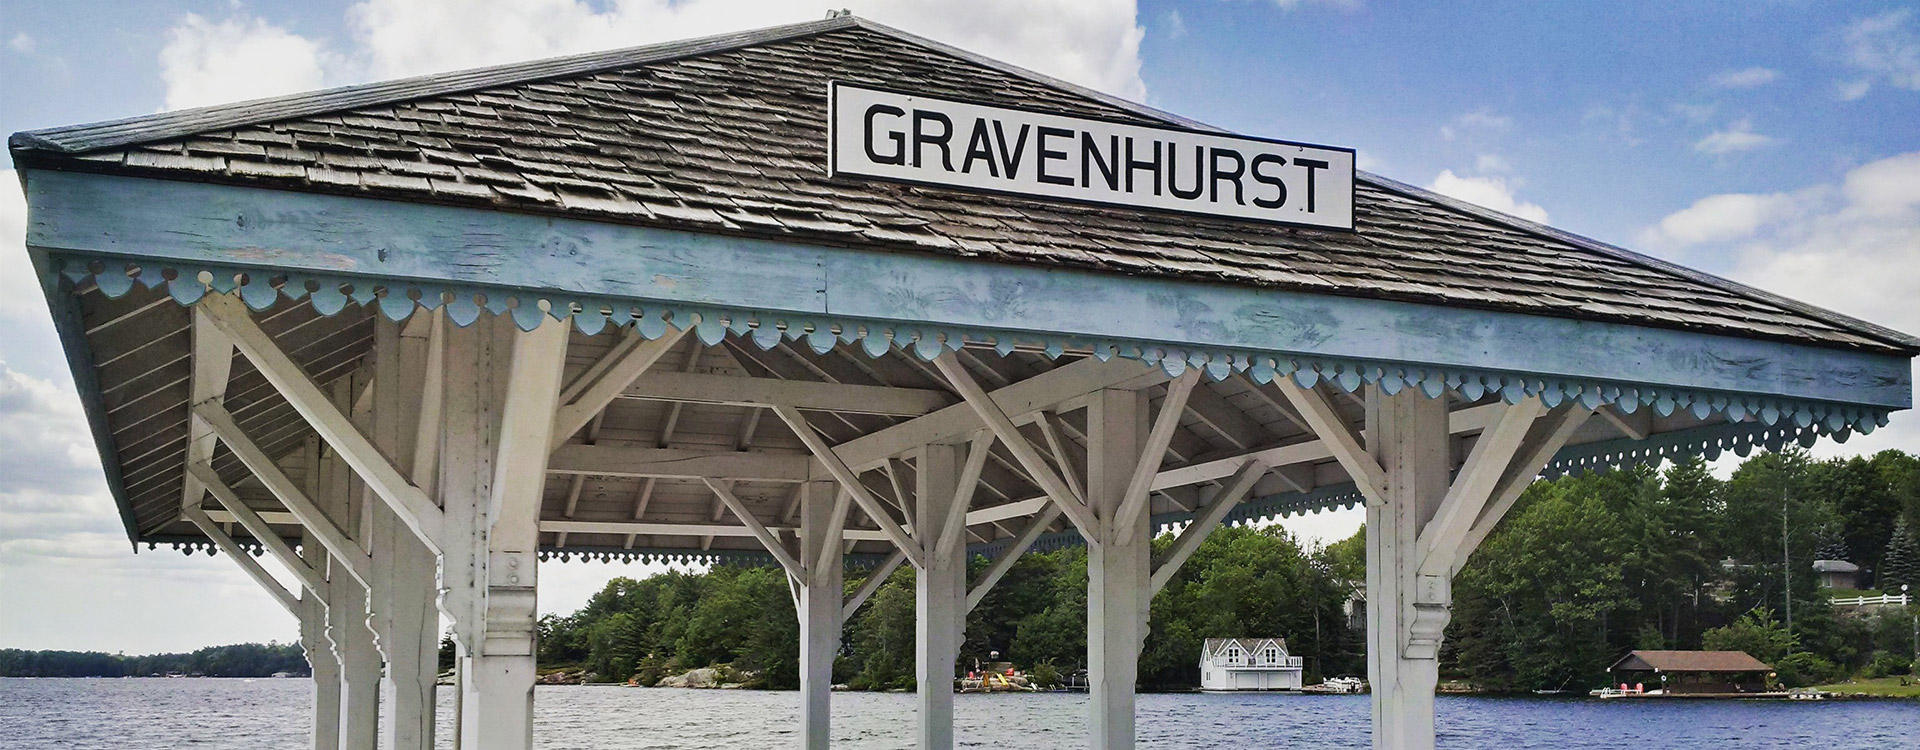 Gravenhurst sign at Muskoka Wharf